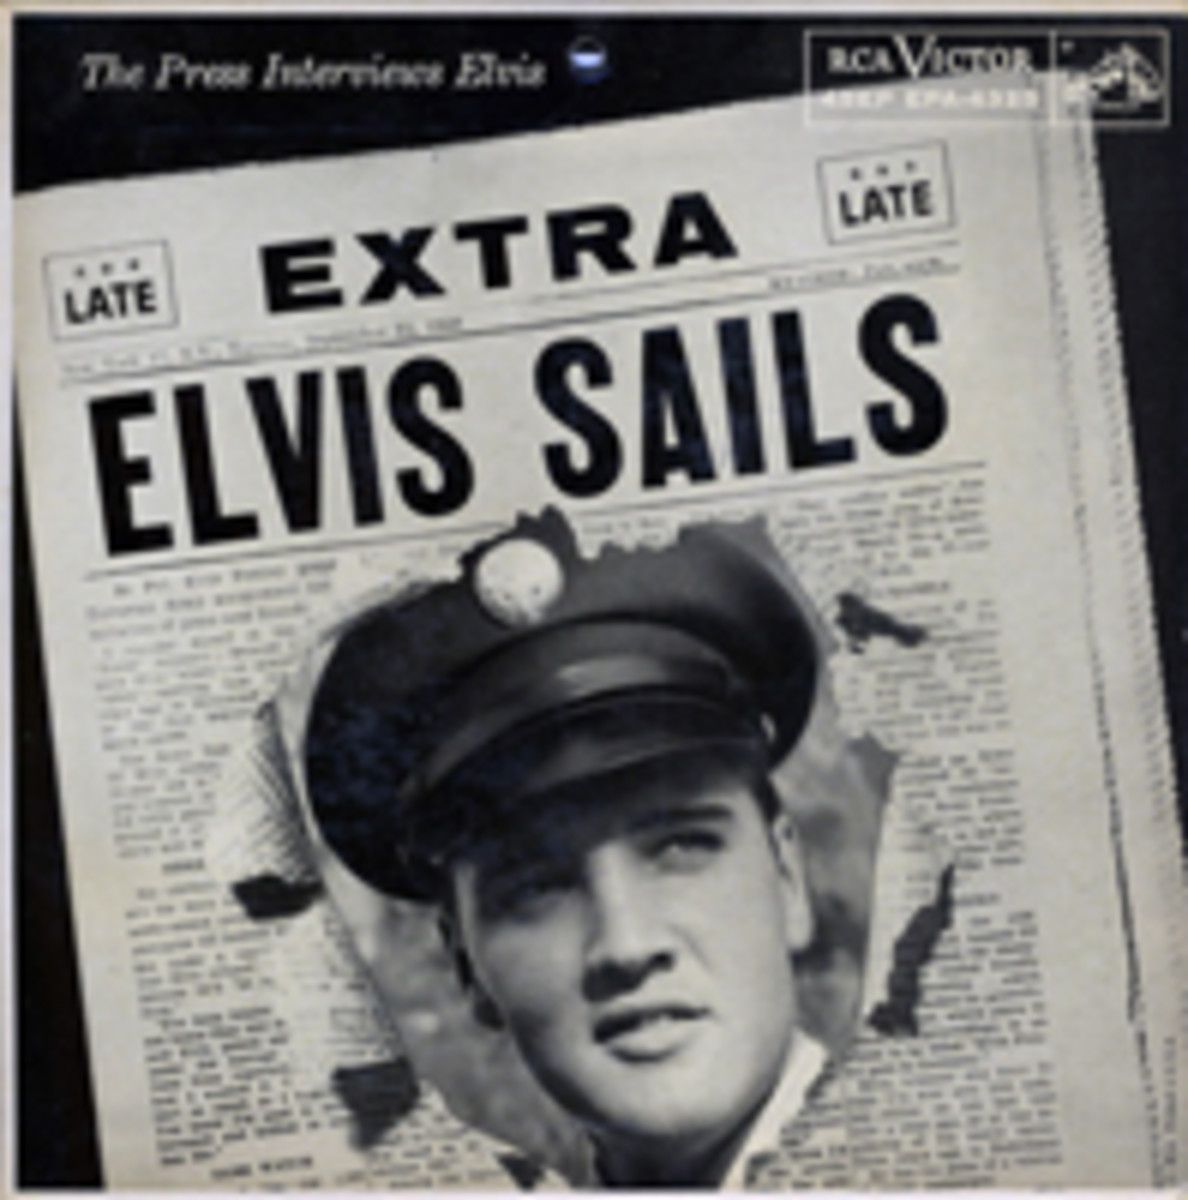 elvis_FI_large collection of singles